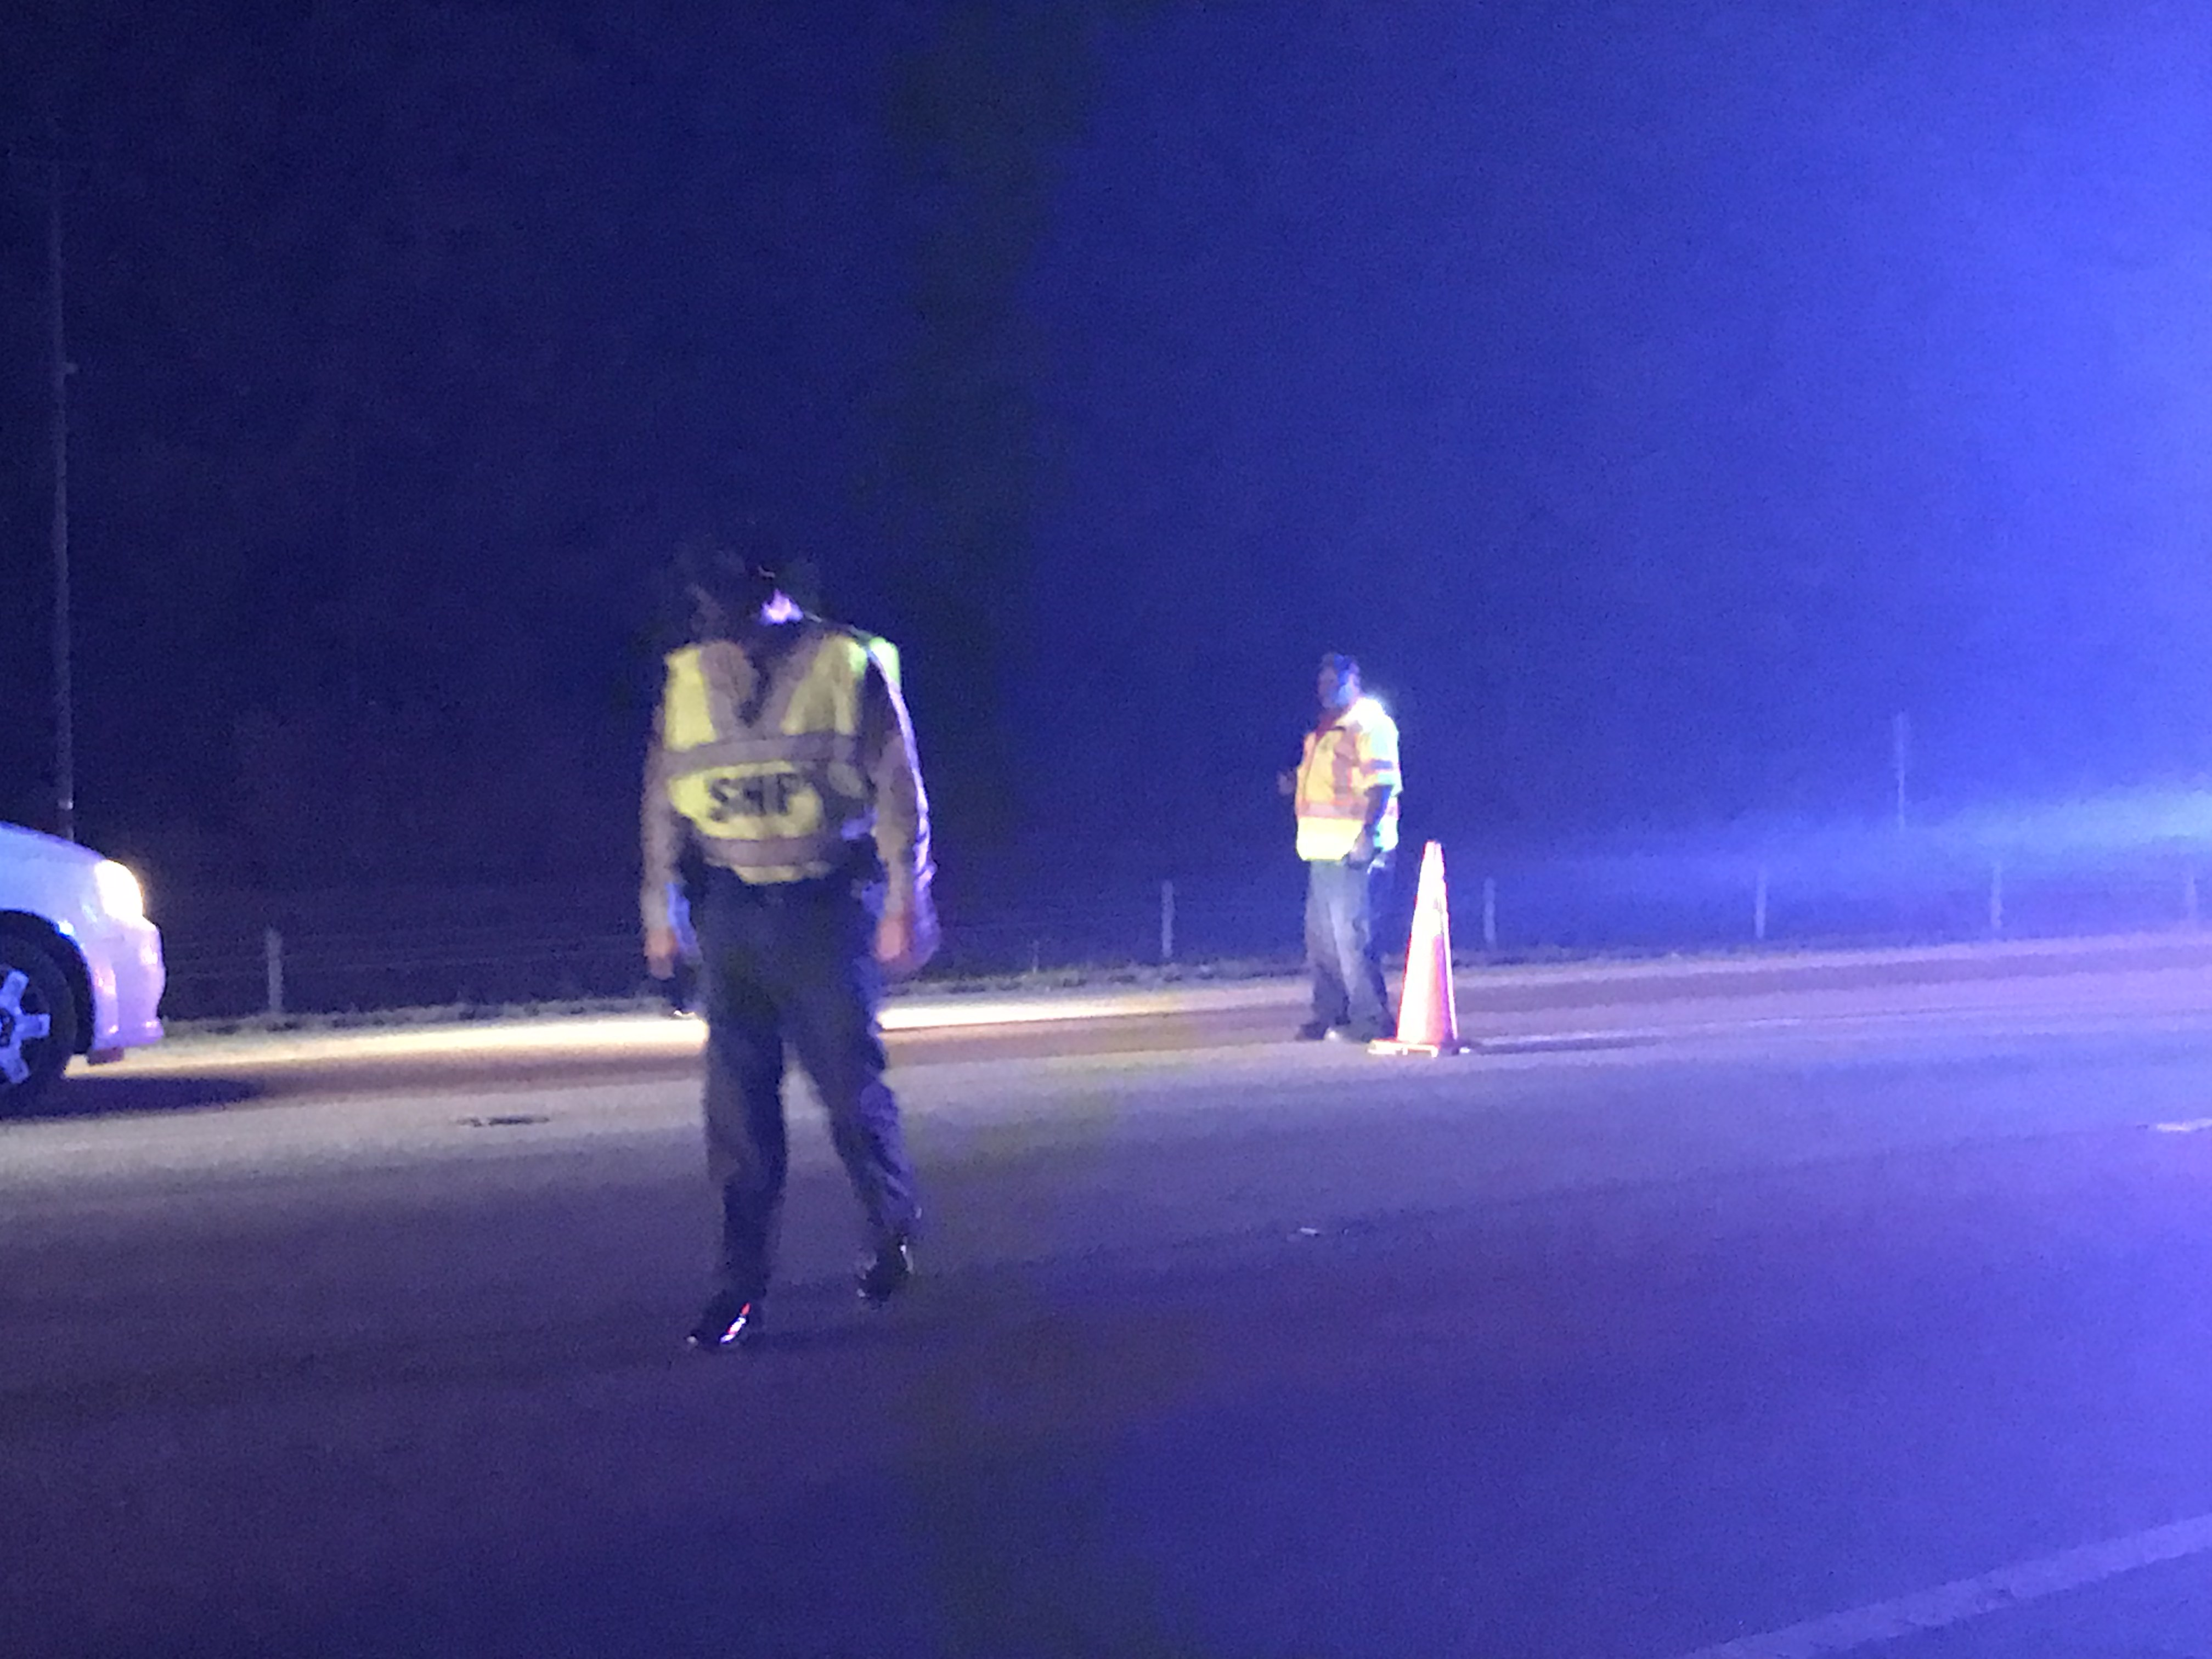 <div class='meta'><div class='origin-logo' data-origin='WTVD'></div><span class='caption-text' data-credit='Robert Judson'>Troopers investigate after a woman was struck and killed on 540 near the Leesville Road exit on Wednesday night.</span></div>